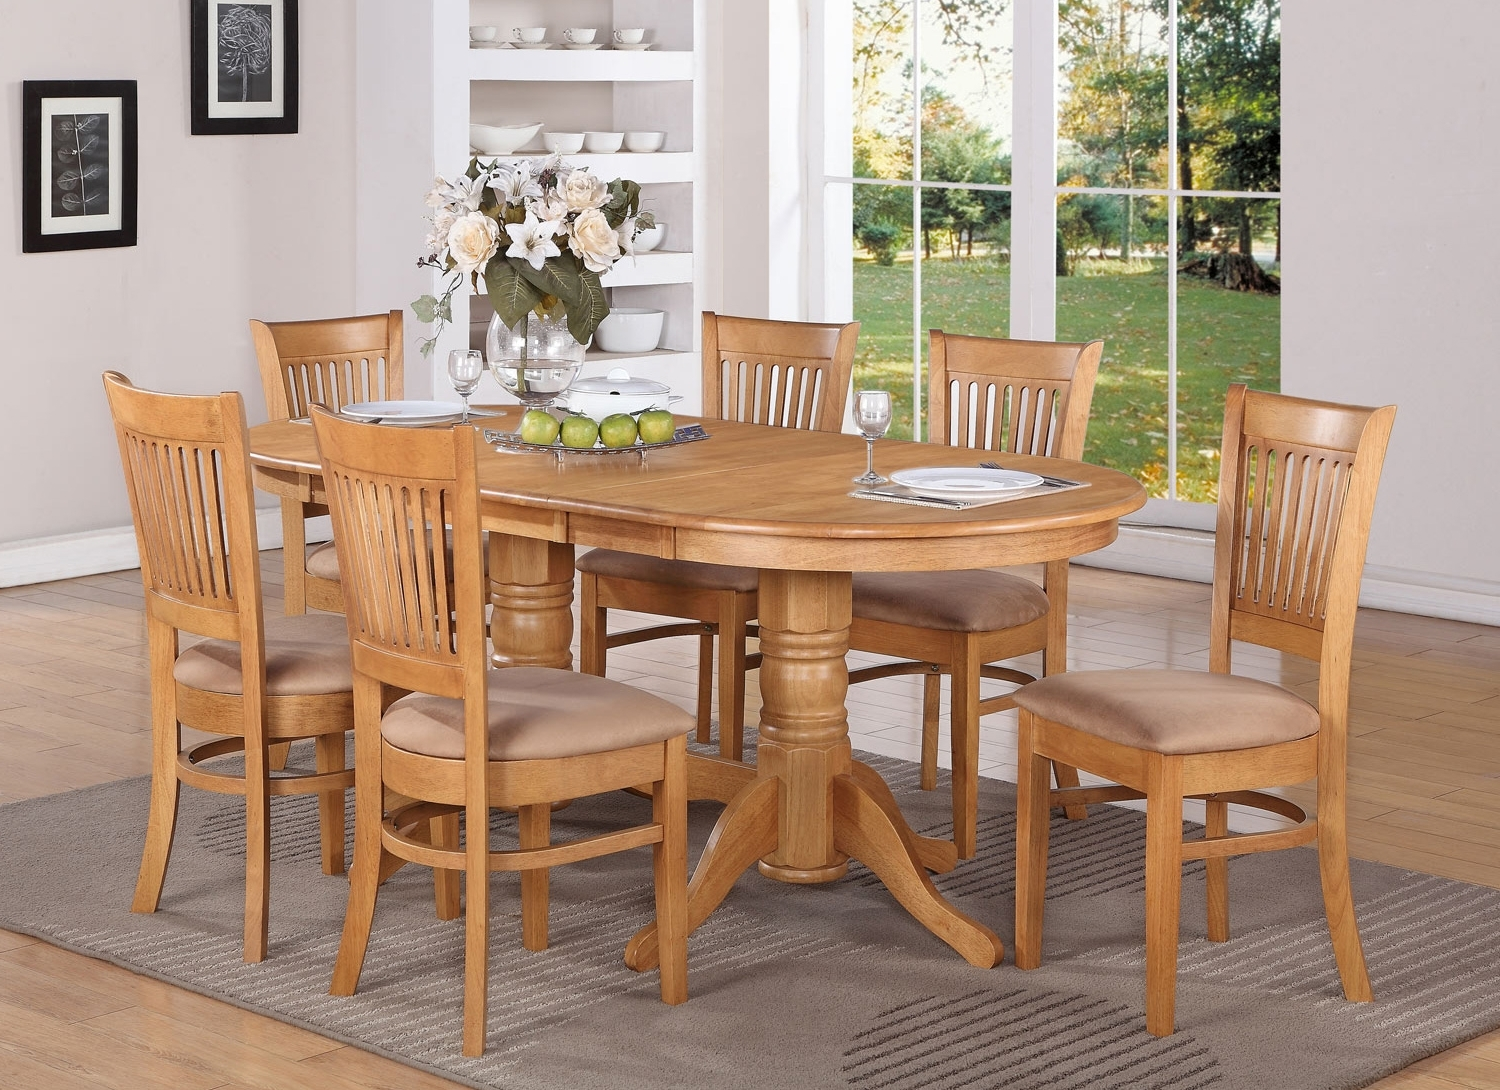 Favorite Oak Dining Tables With 6 Chairs Inside Vancouver 7Pc Oval Dinette Dining Table 6 Microfiber Chairs,oak Finish (View 4 of 25)